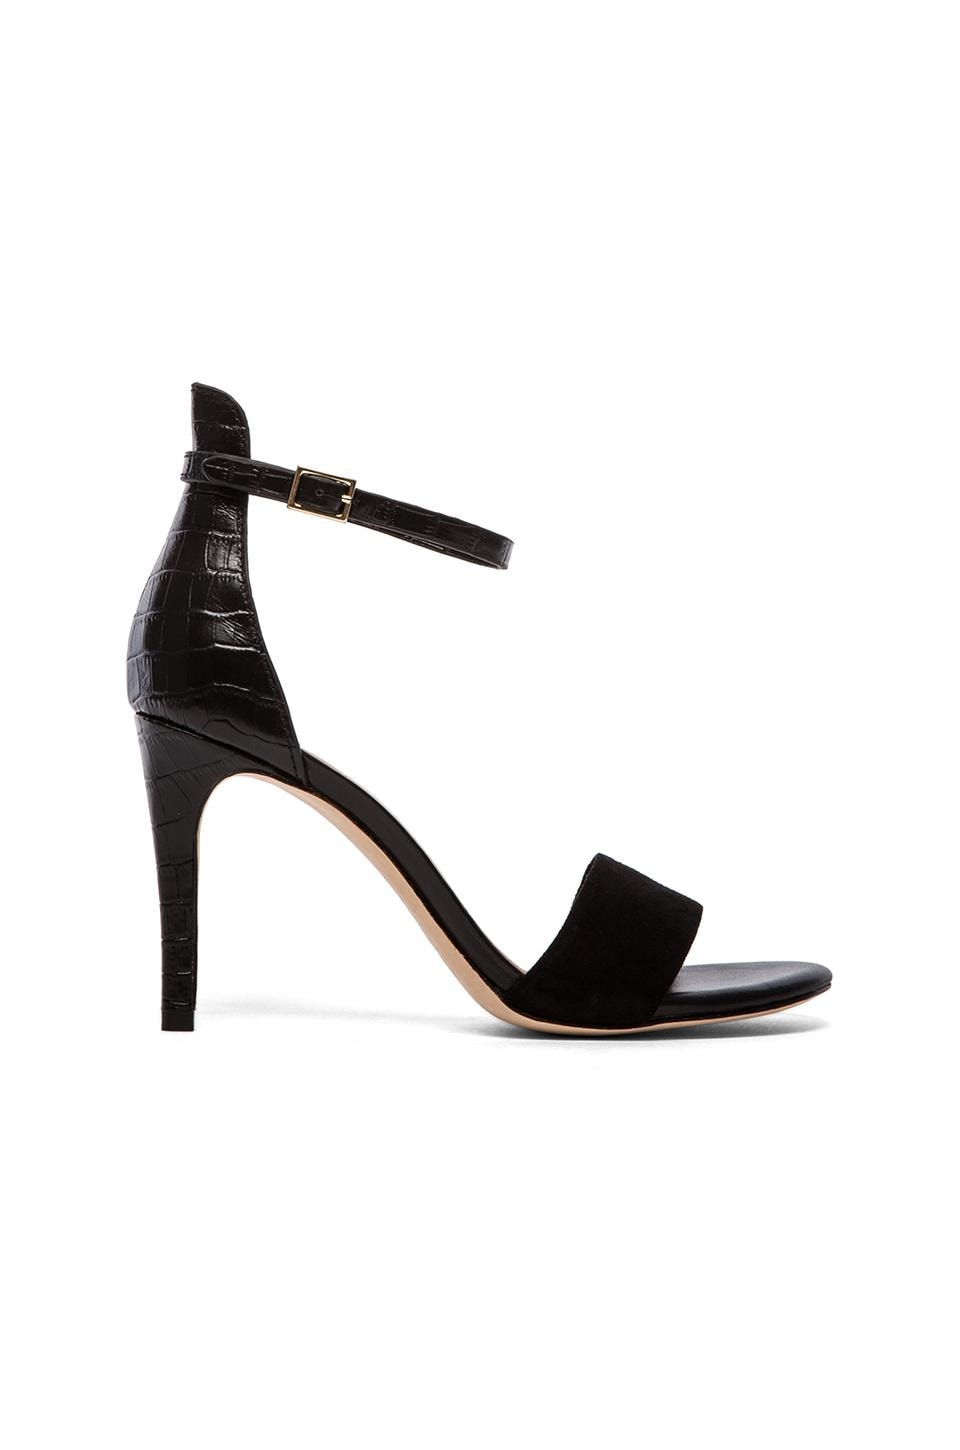 Joie Jaclyn Sandal in Black